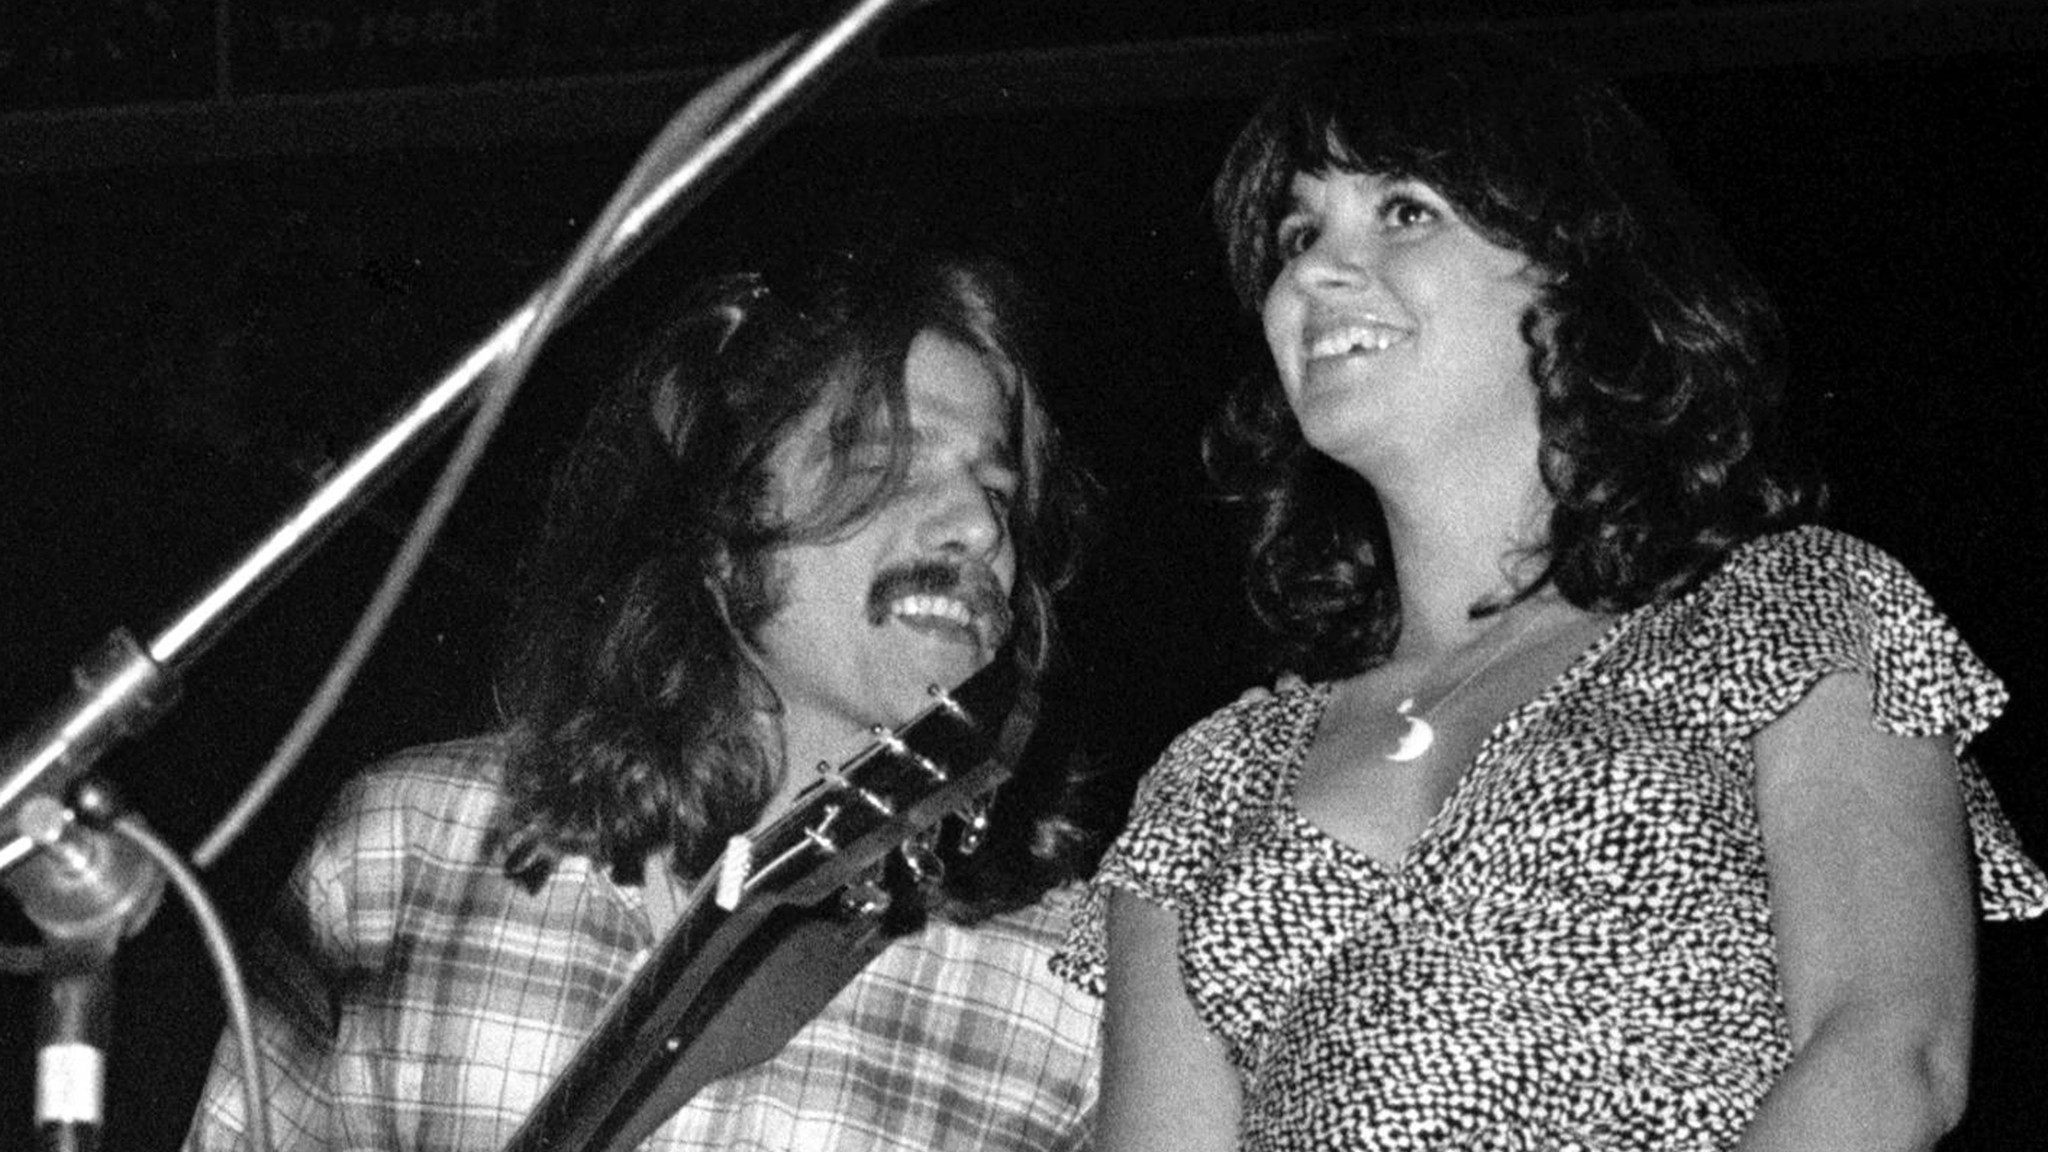 glenn frey - i've got mineglenn frey you belong to the city, glenn frey - the heat is on, glenn frey – flip city, glenn frey - i've got mine, glenn frey скачать, glenn frey young, glenn frey better in the usa, glenn frey strange weather, glenn frey (eagles), glenn frey photos, glenn frey the shadow of your smile lyrics, glenn frey cause of death, glenn frey videos, glenn frey - the heat is on video, glenn frey discogs, glenn frey don johnson, glenn frey quotes, glenn frey i got mine, glenn frey youtube, glenn frey solo collection